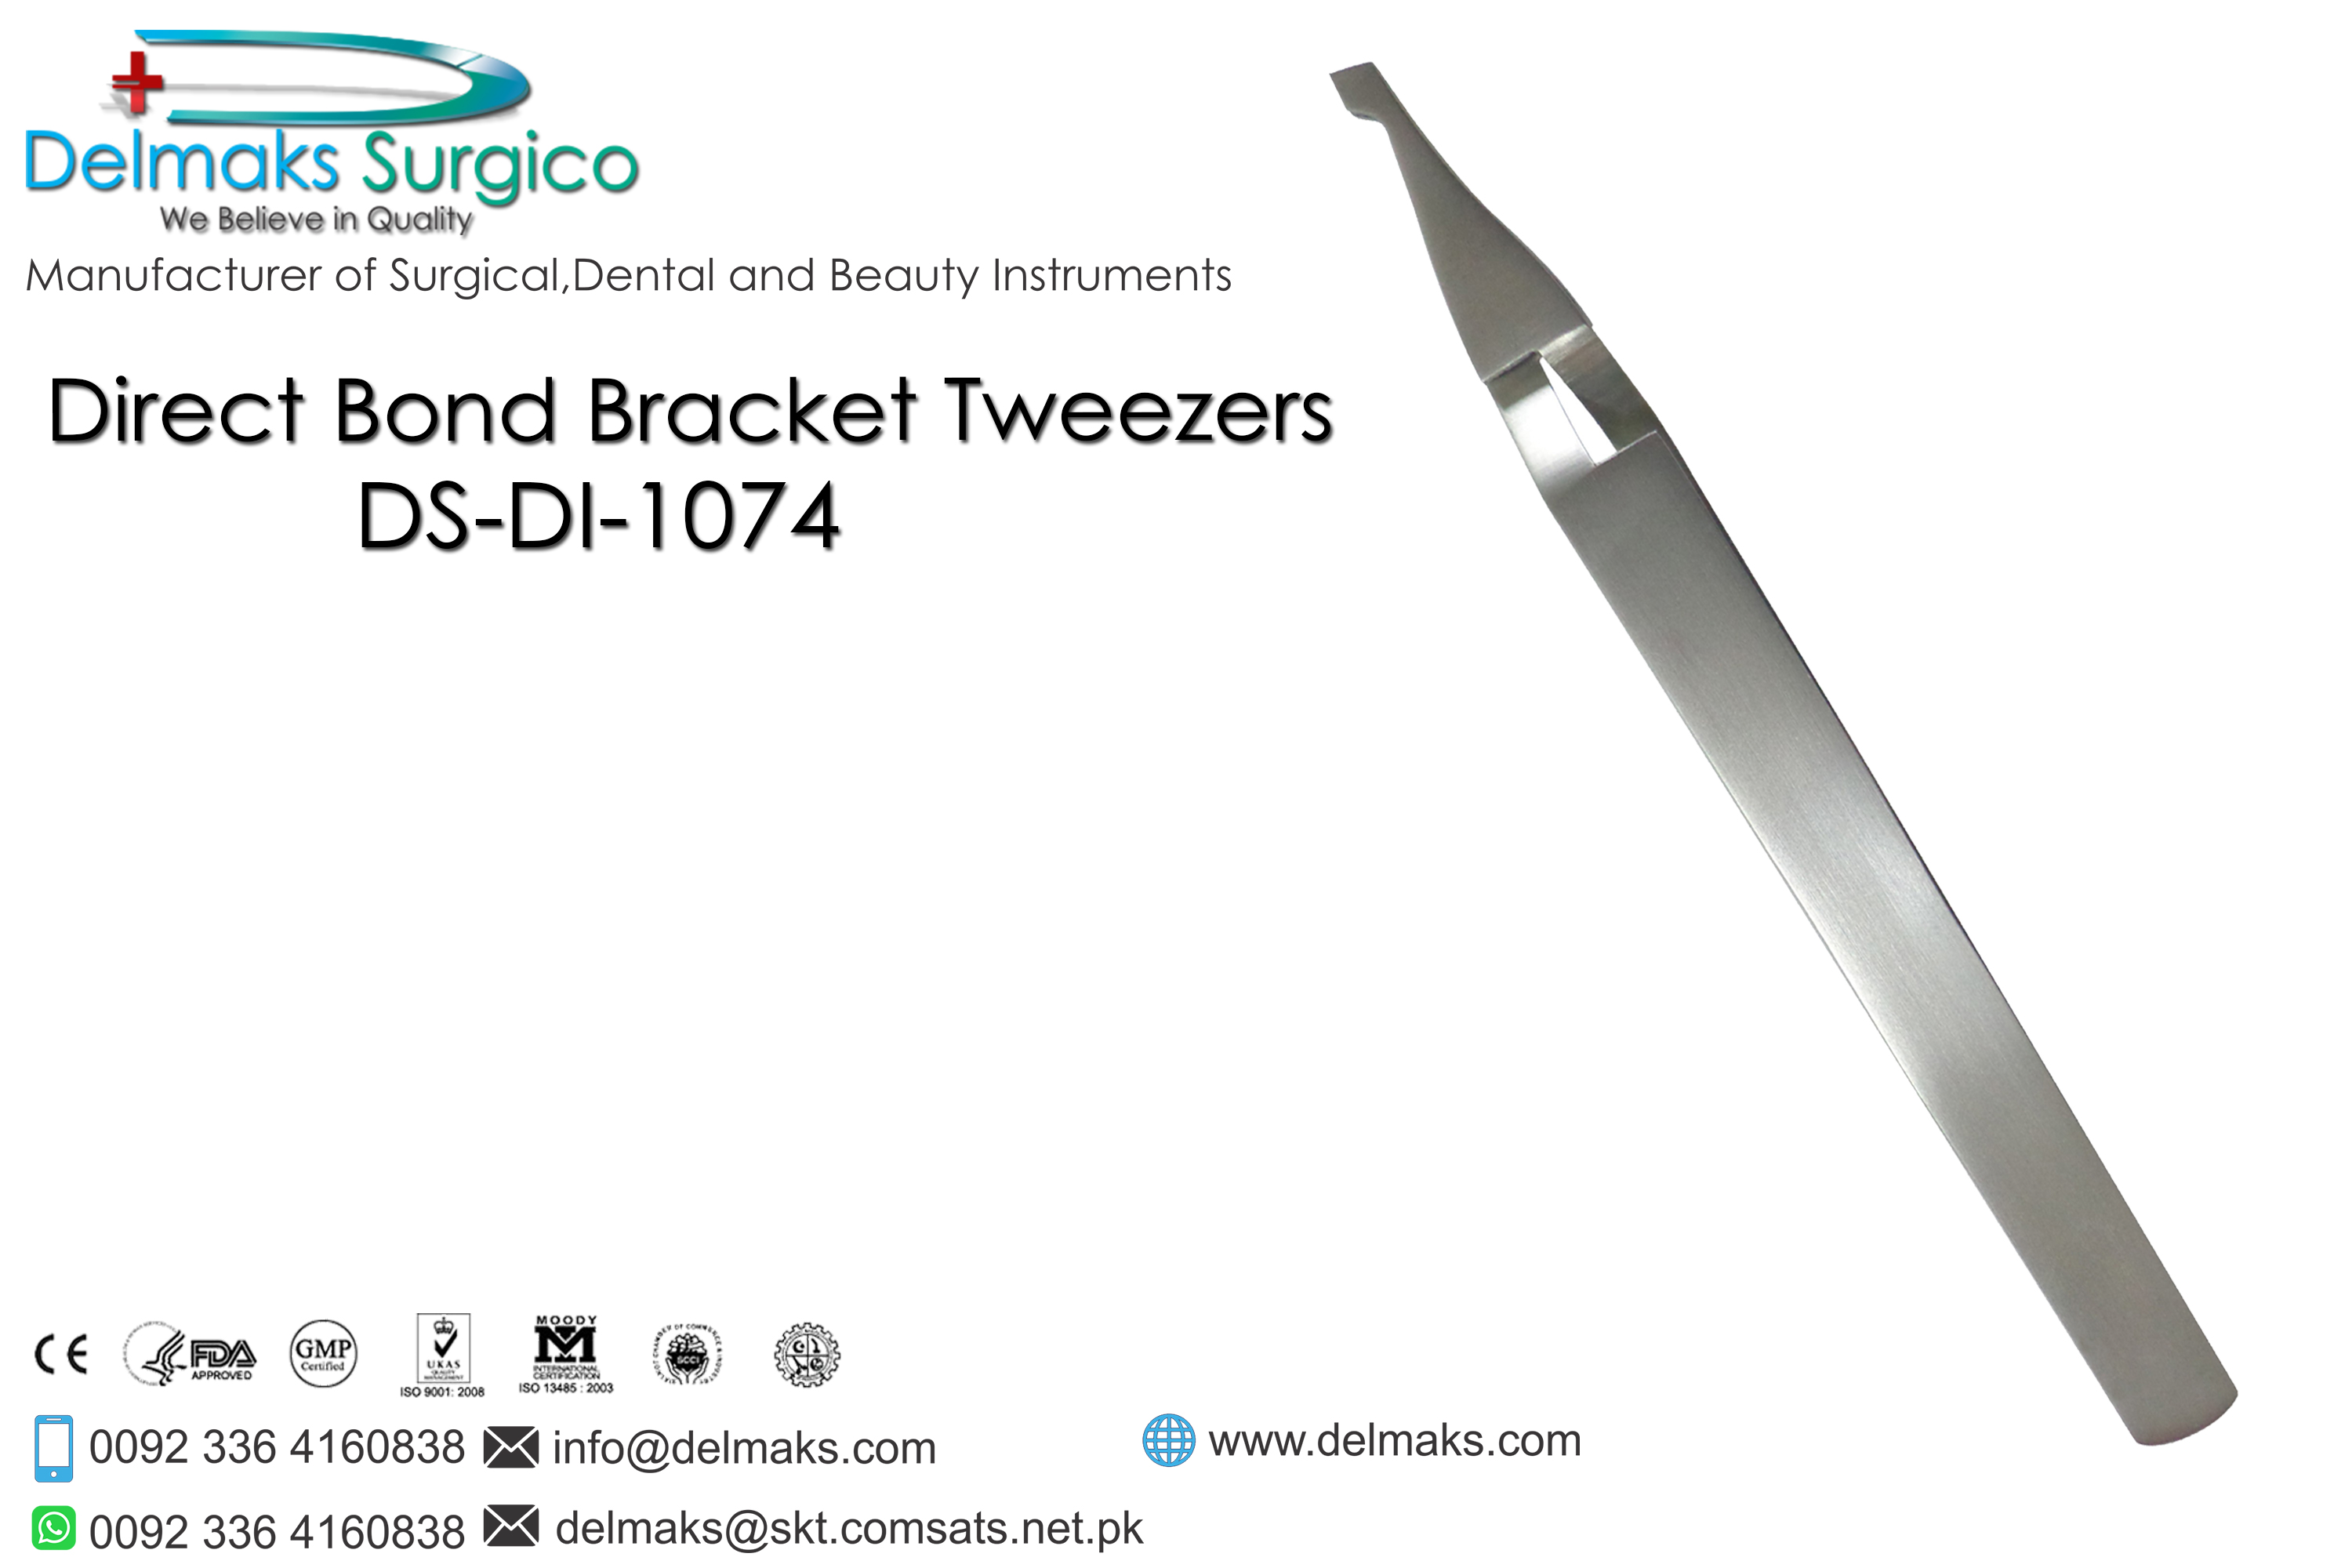 Direct Bond Bracket Tweezer-Bracket Tweezers-Orthodontics-Dental Instruments-Delmaks Surgico